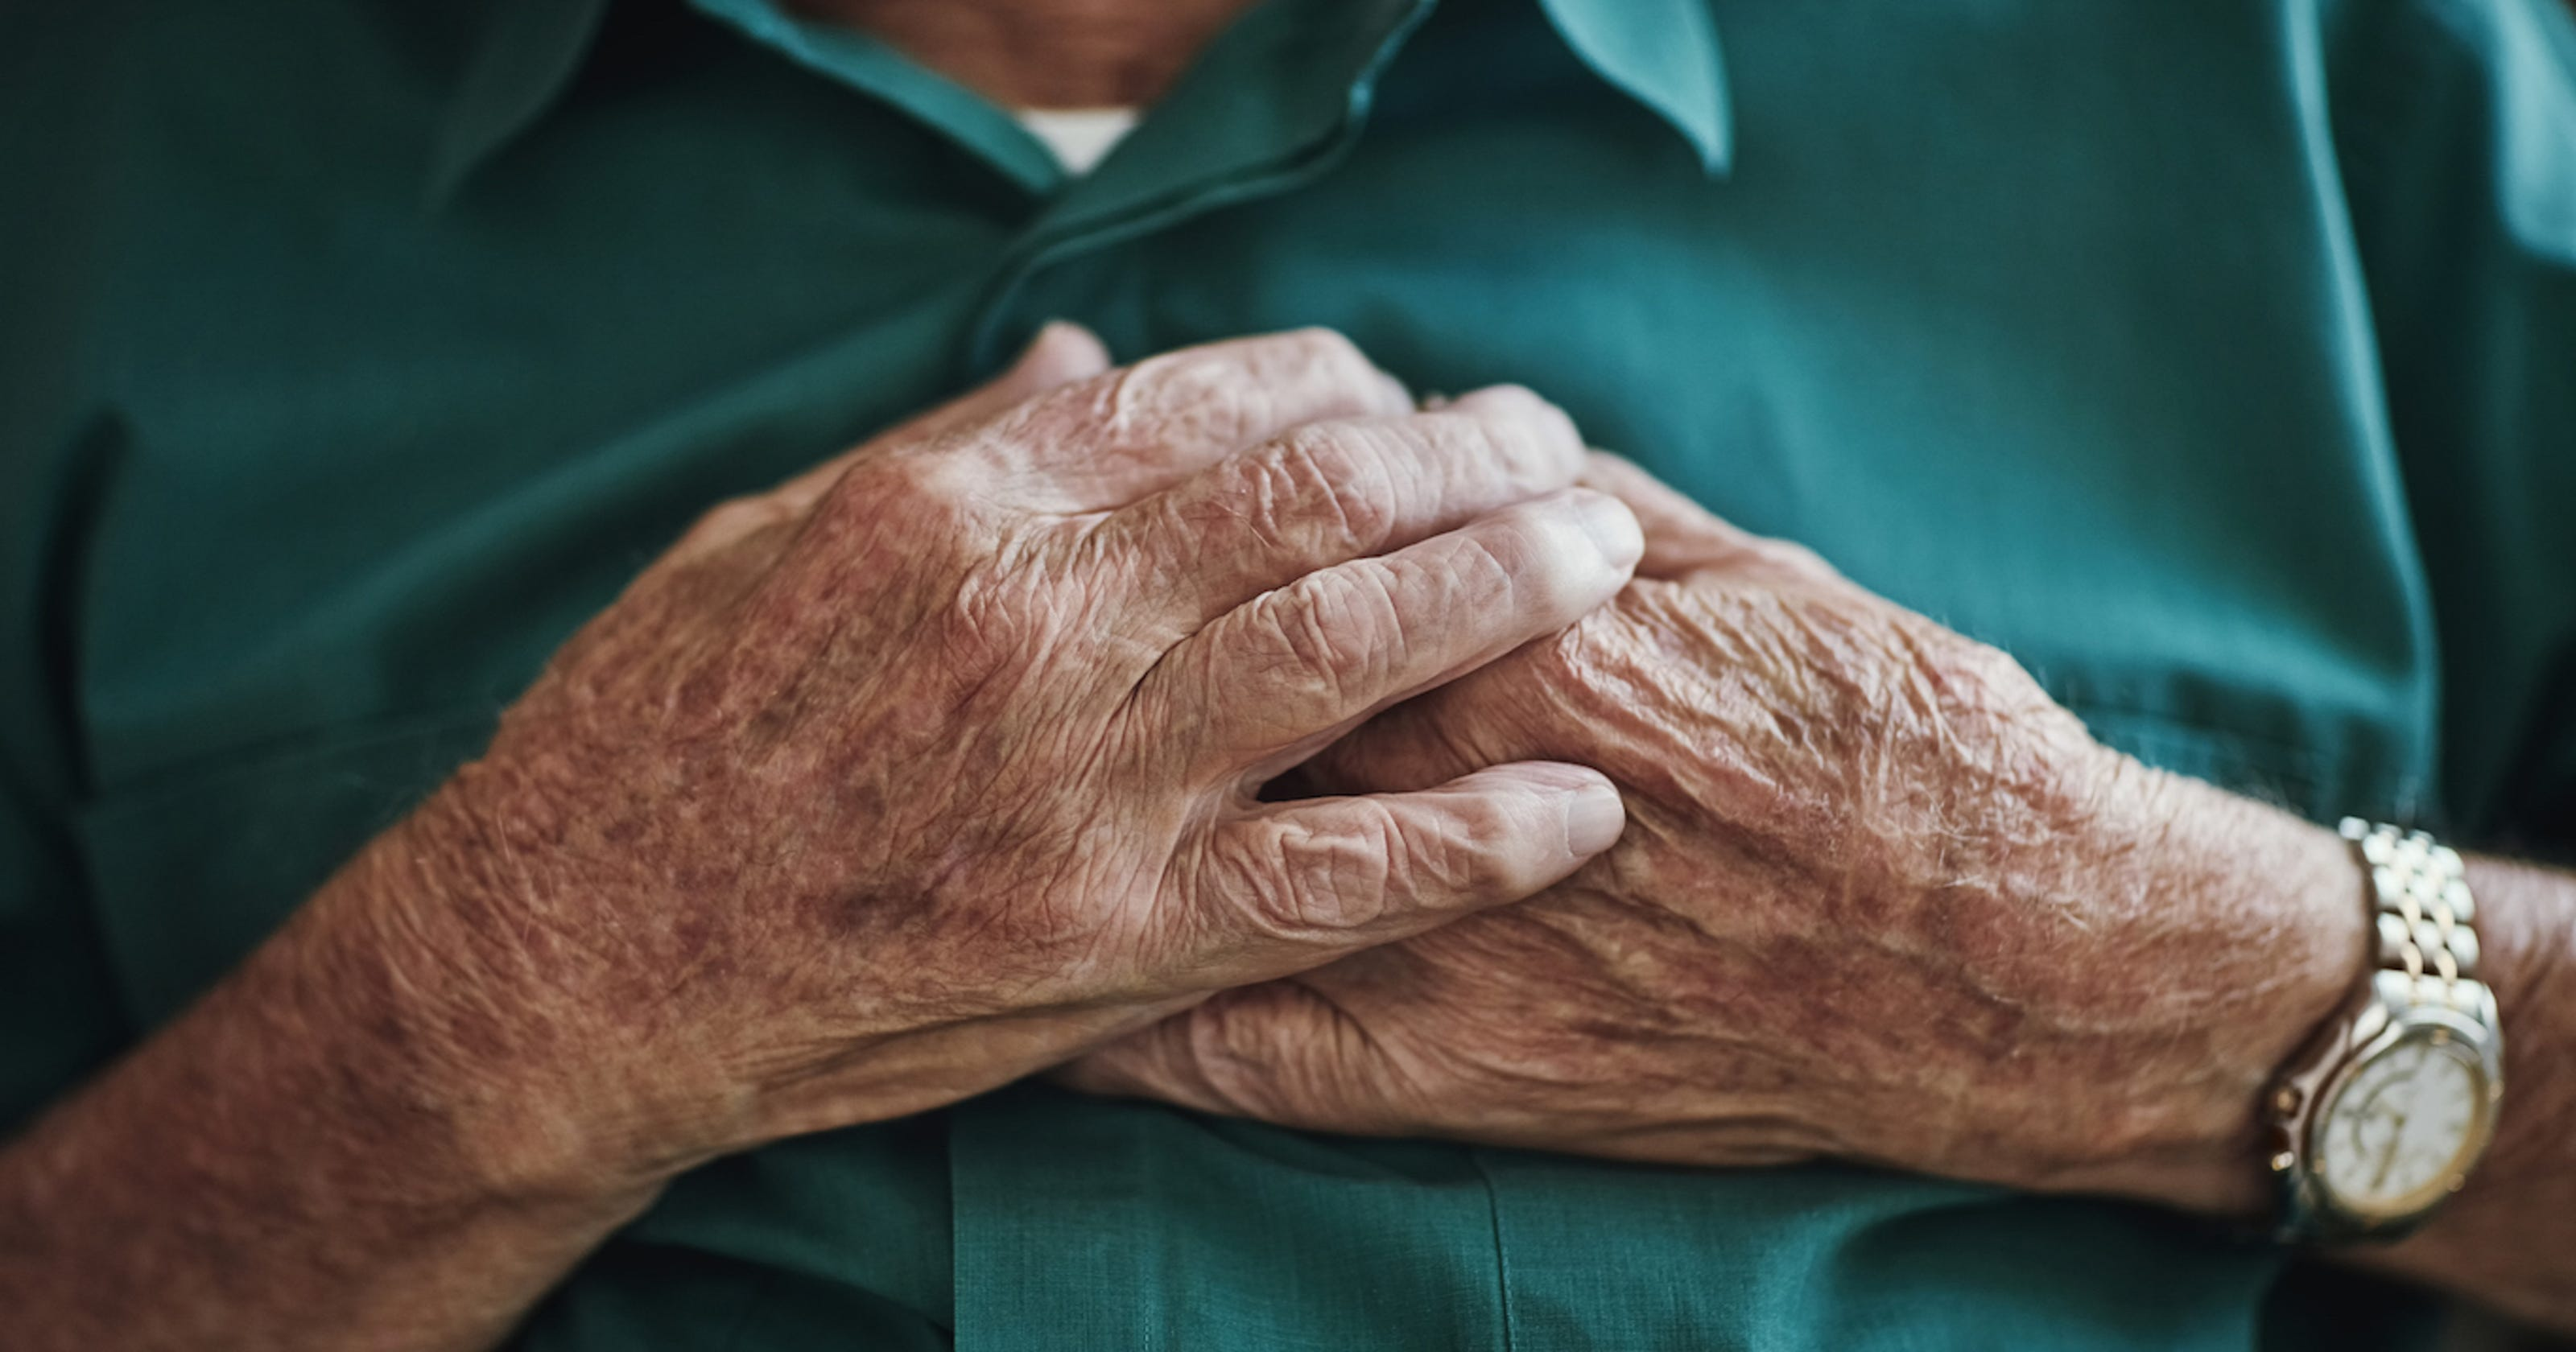 Heart disease: Nearly half of U.S. adults have it, study finds